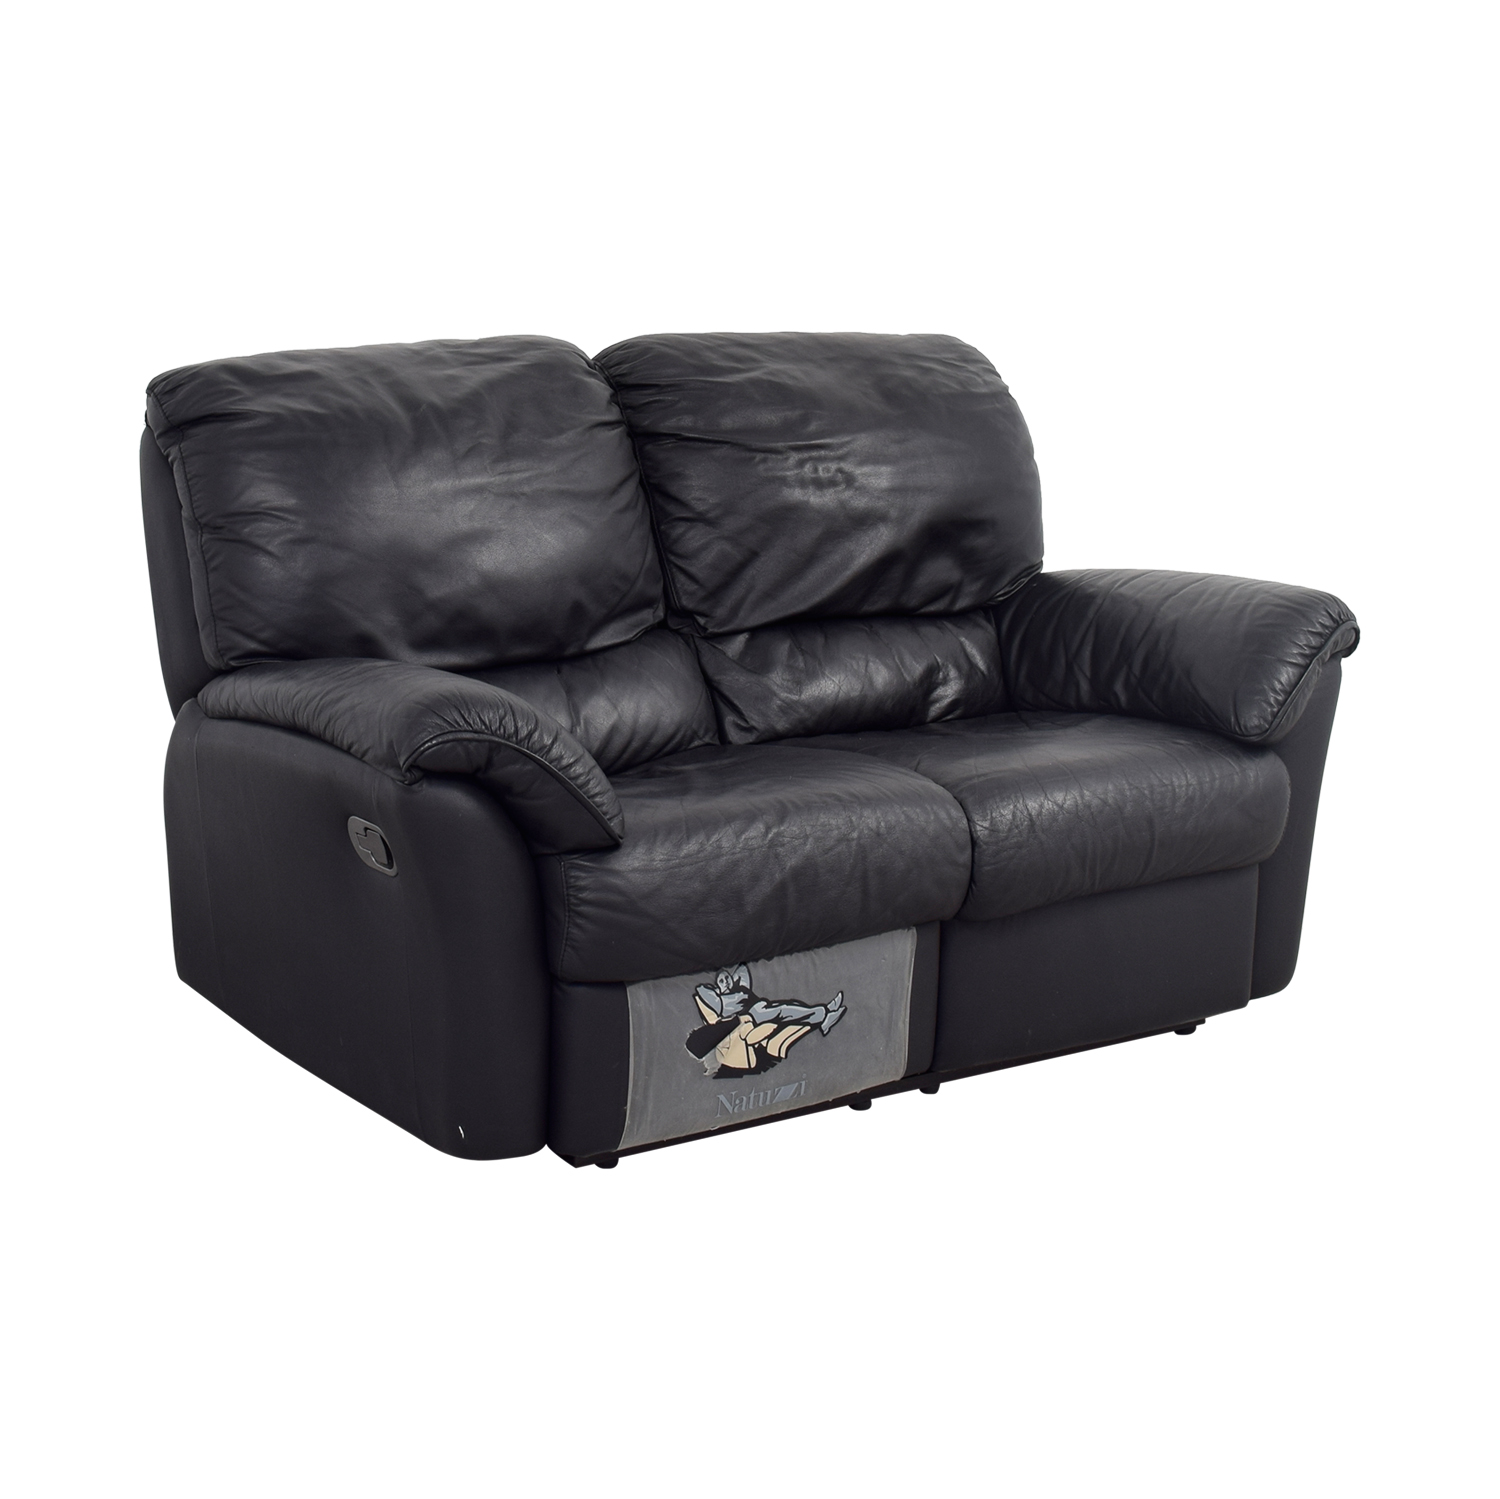 Remarkable 84 Off Natuzzi Natuzzi Leather Recliner Loveseat Sofas Pabps2019 Chair Design Images Pabps2019Com